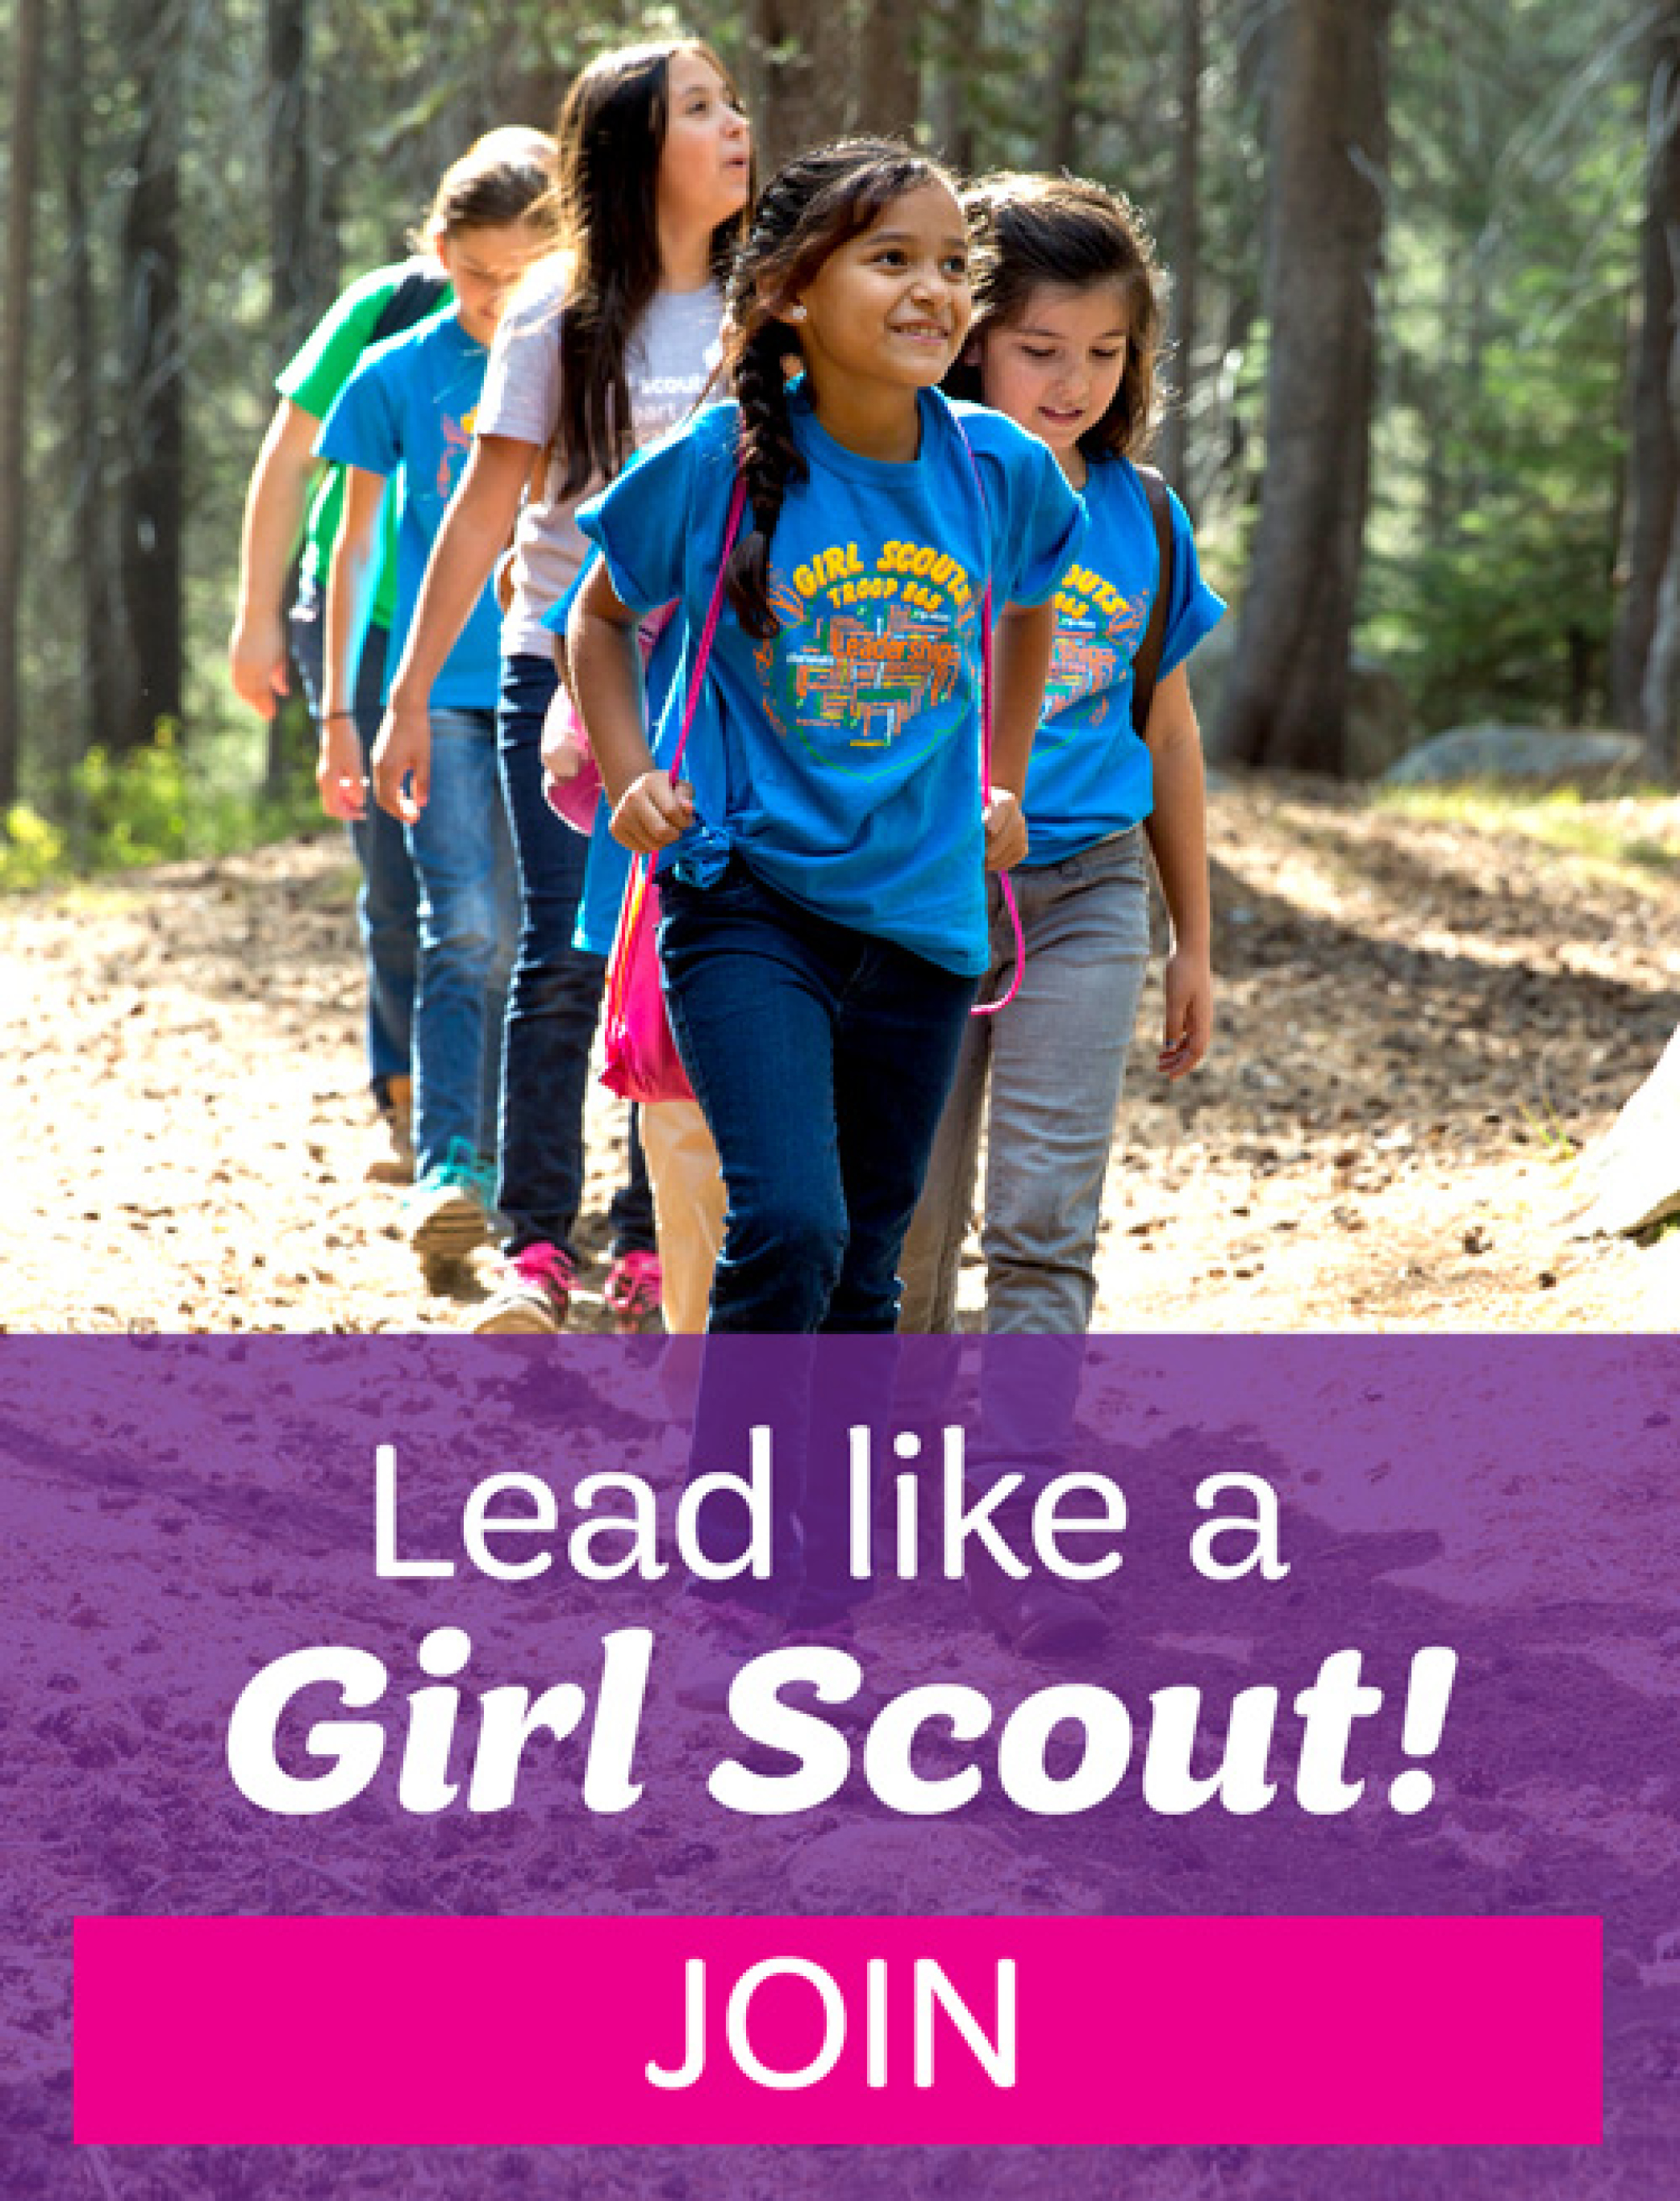 Lead Like a Girl Scout! JOIN